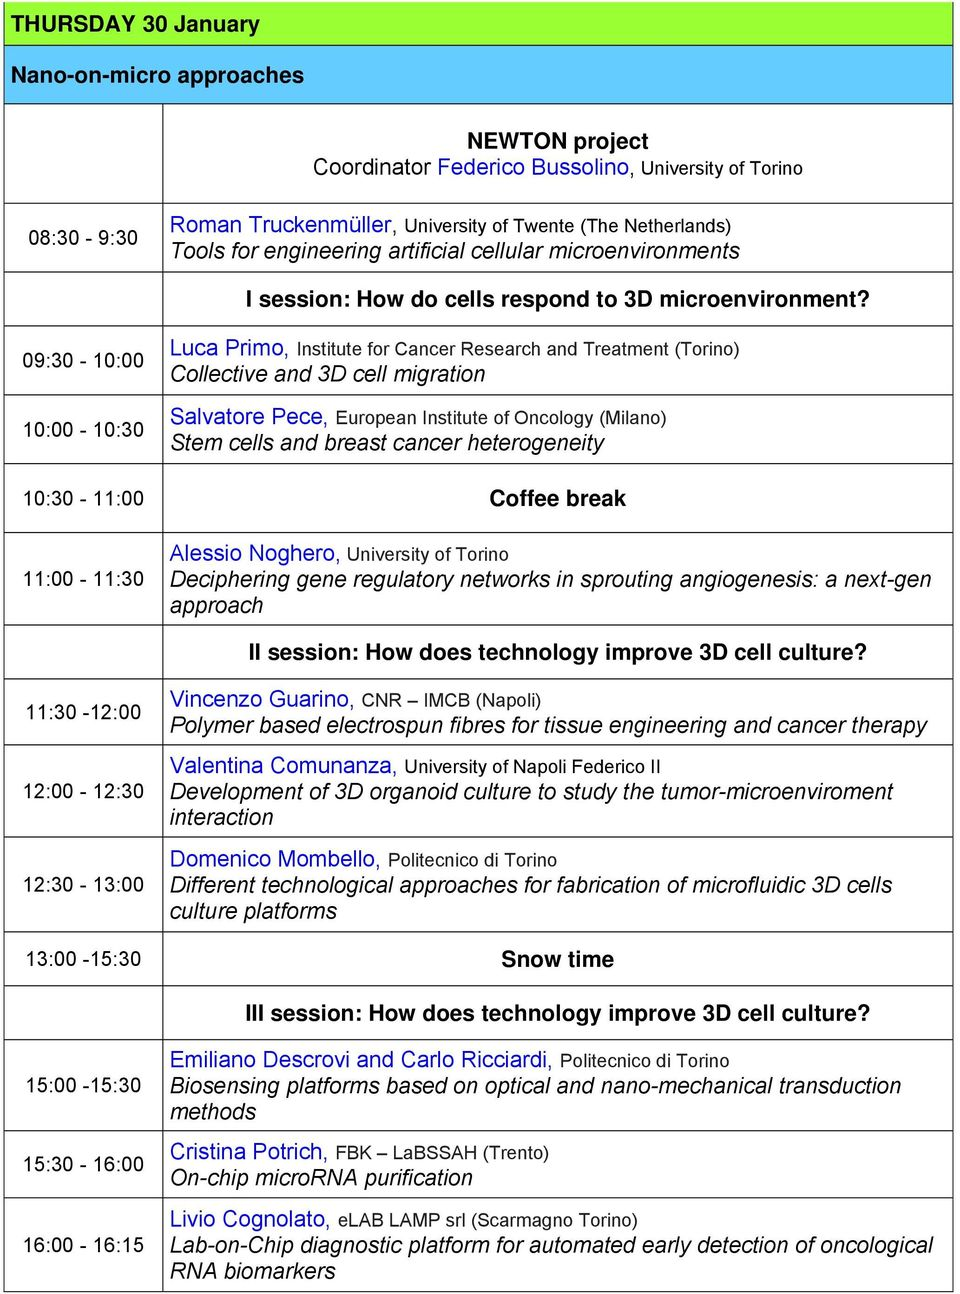 09:30-10:00 10:00-10:30 Luca Primo, Institute for Cancer Research and Treatment (Torino) Collective and 3D cell migration Salvatore Pece, European Institute of Oncology (Milano) Stem cells and breast